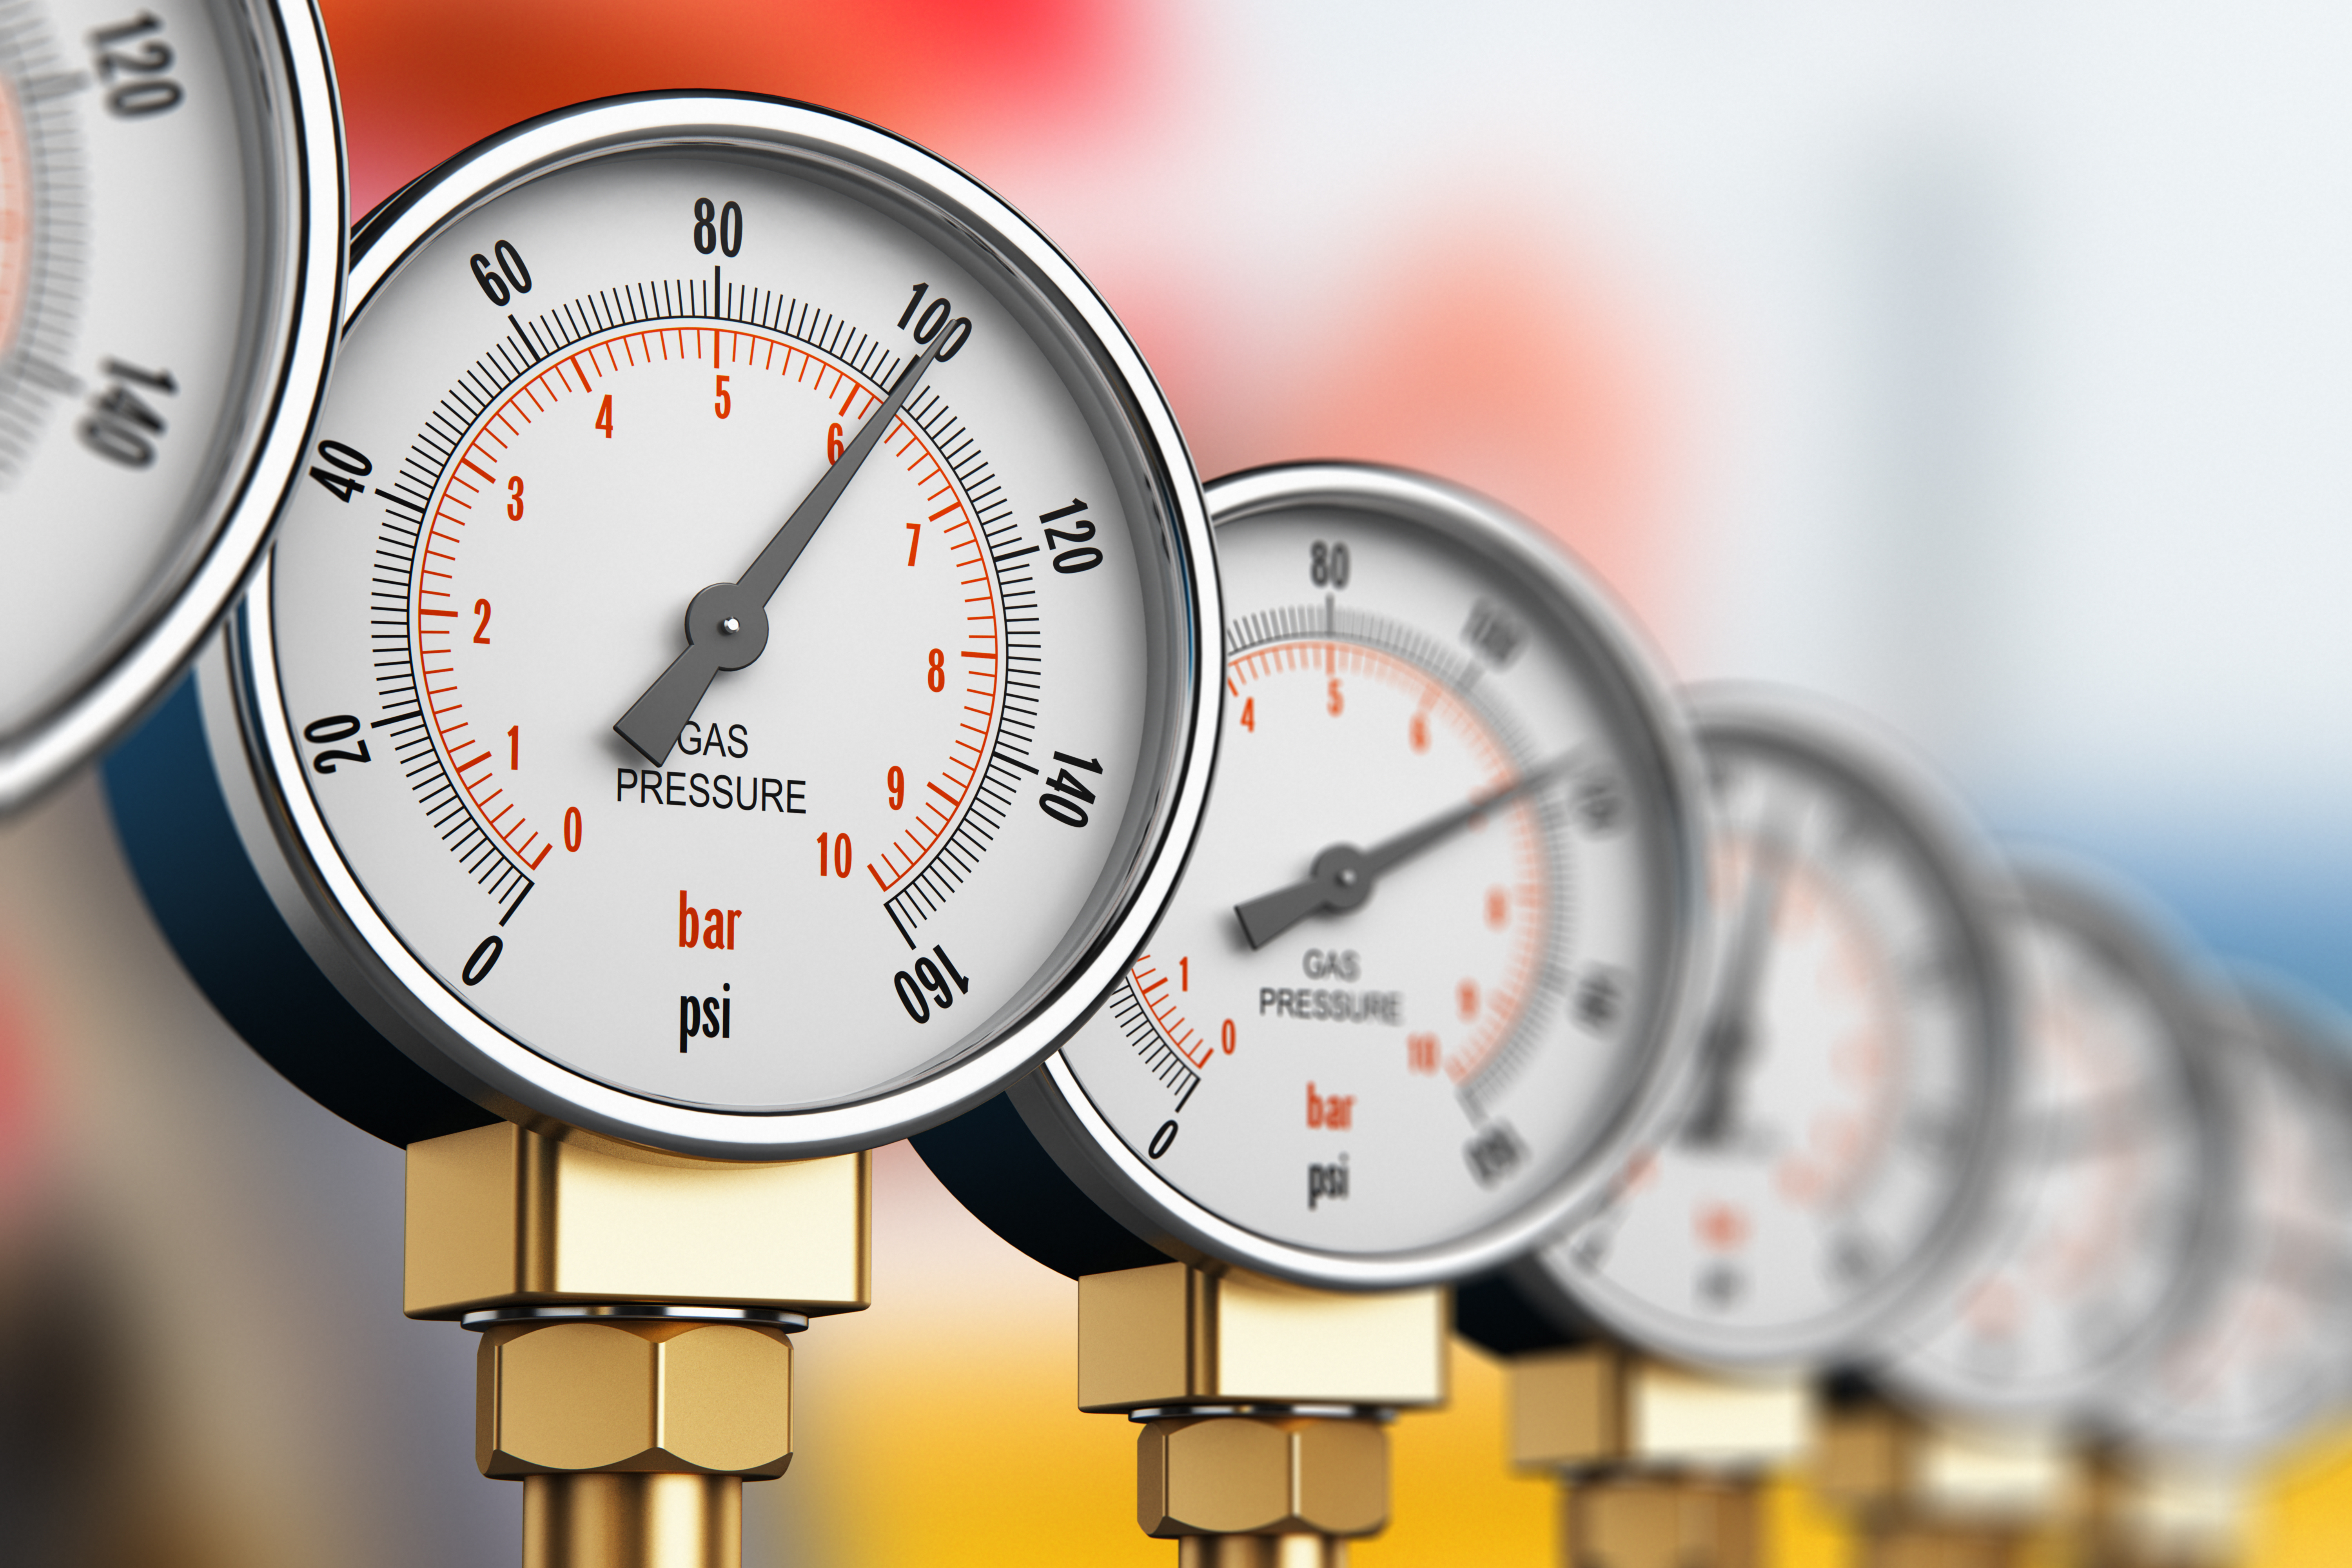 Row of industrial high pressure gas gauge meters